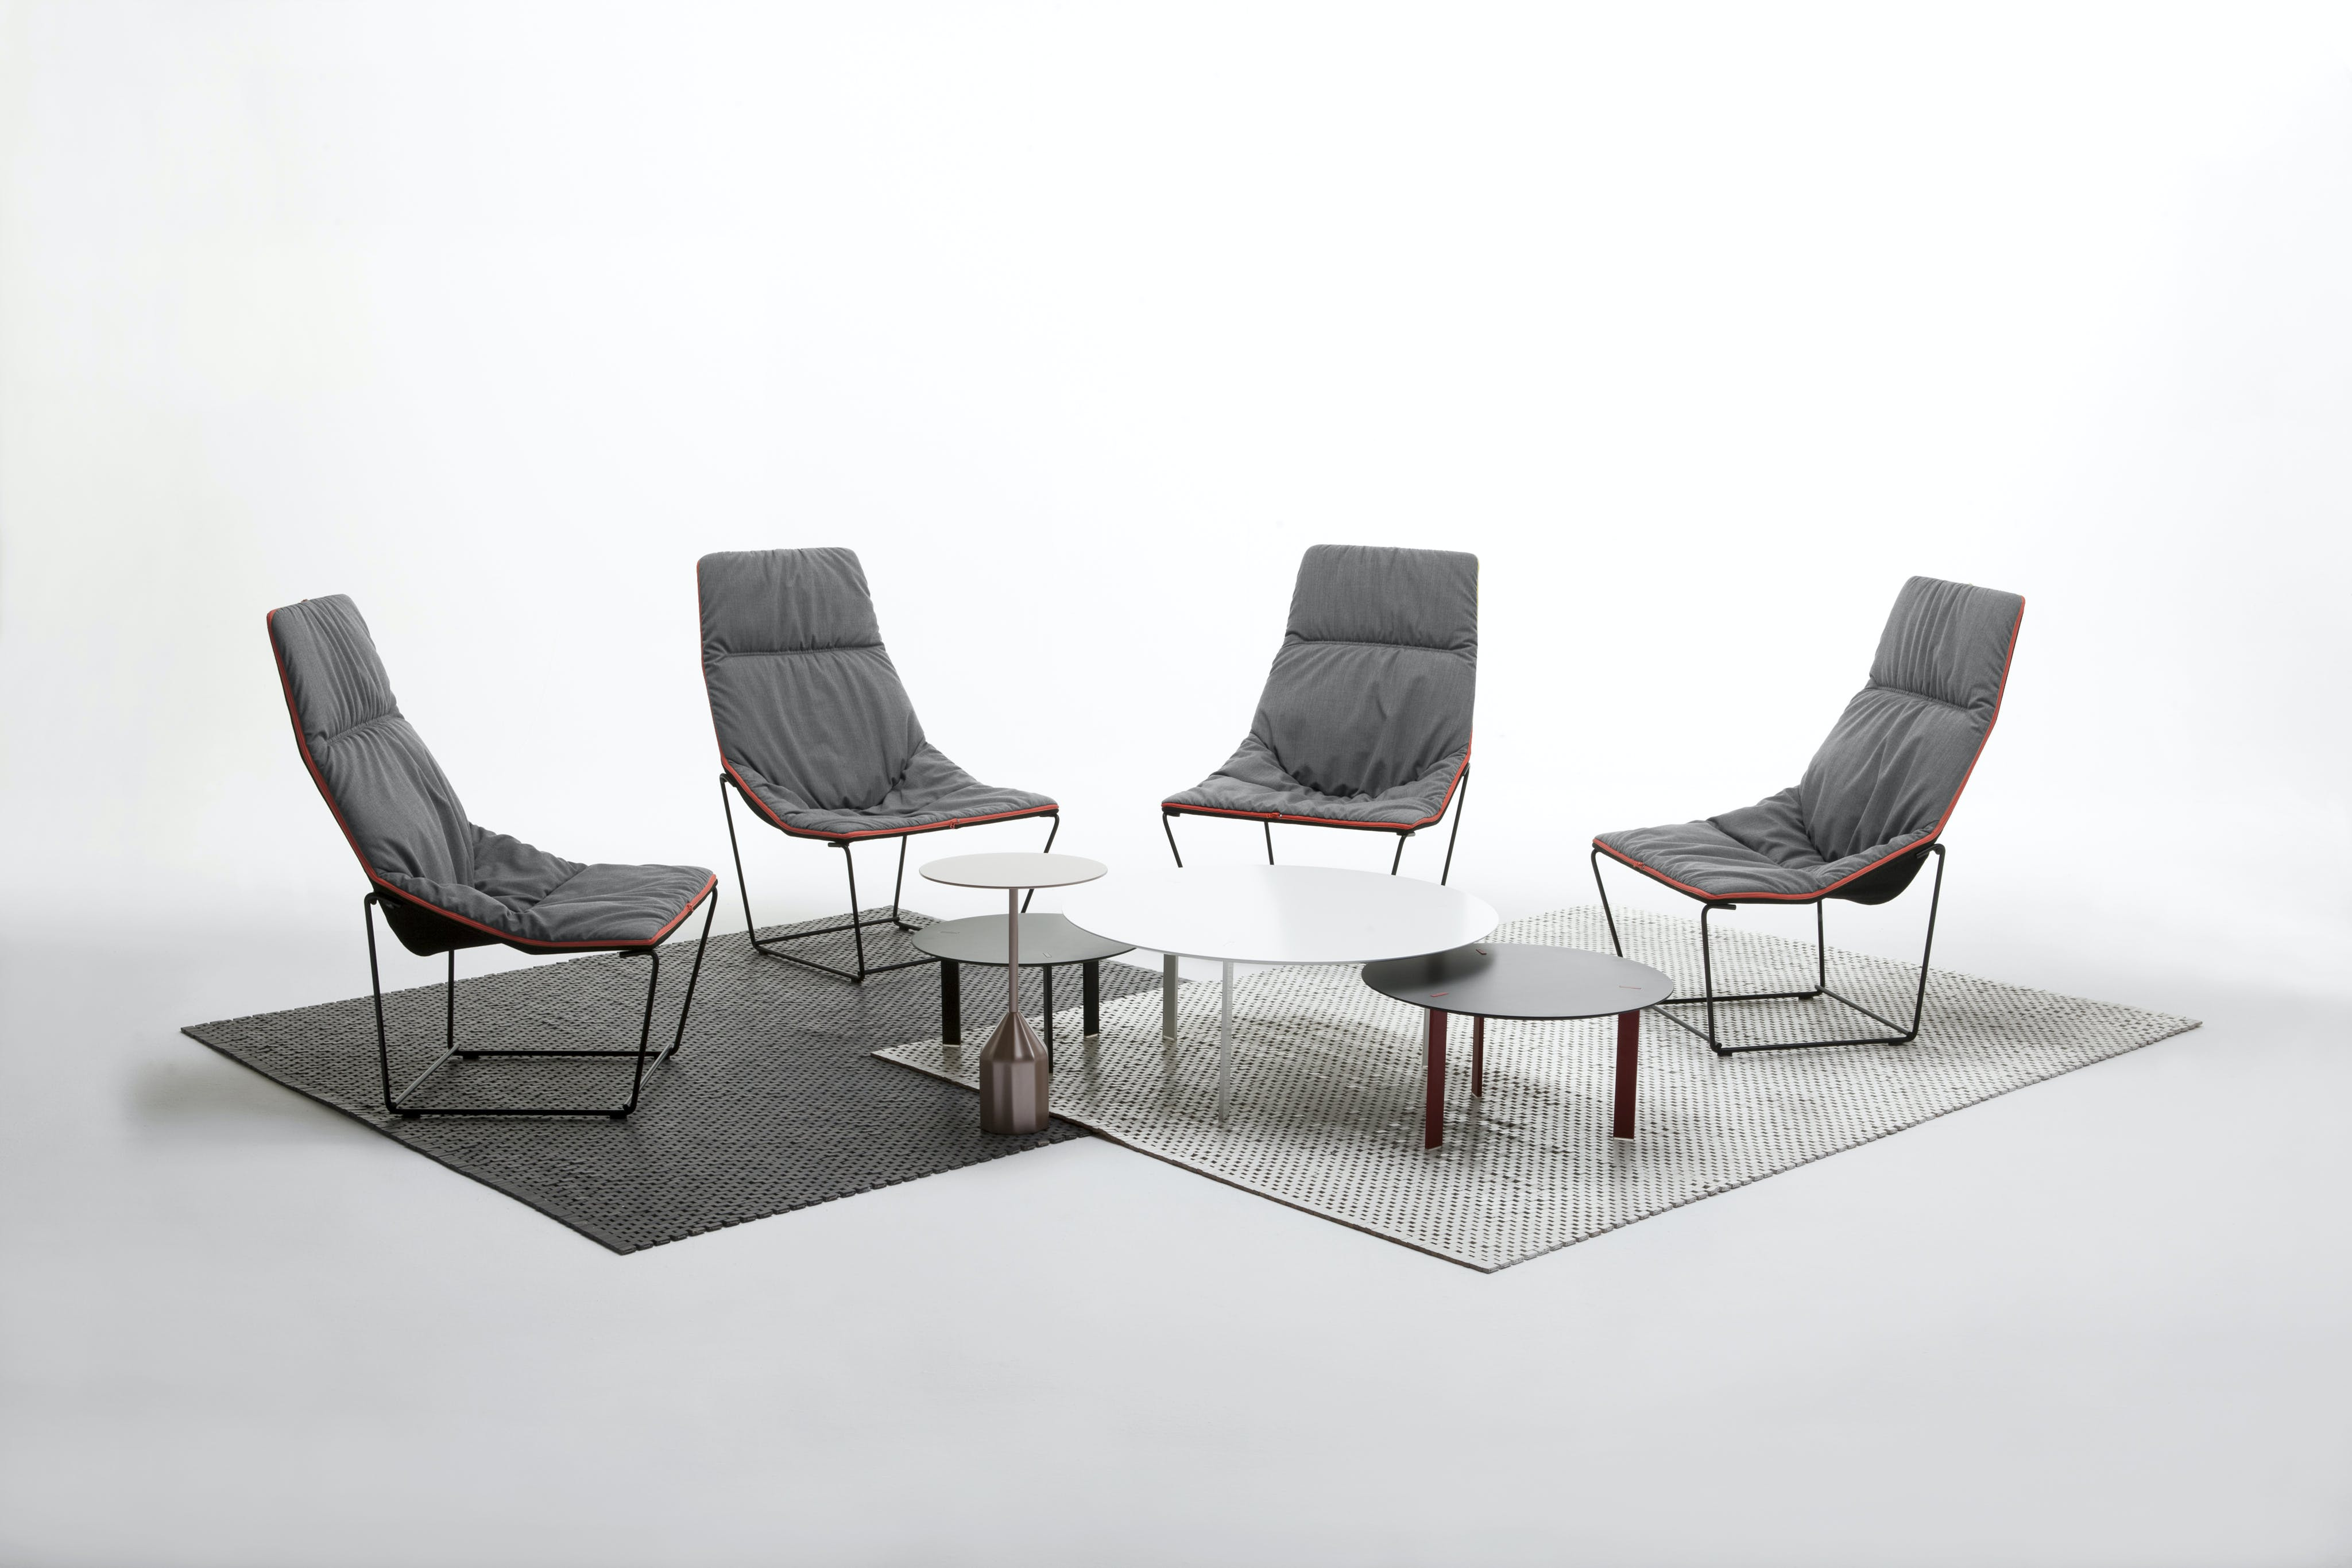 Viccarbe-222Ace-armchair-by-Jean-Marie-Massaud-1